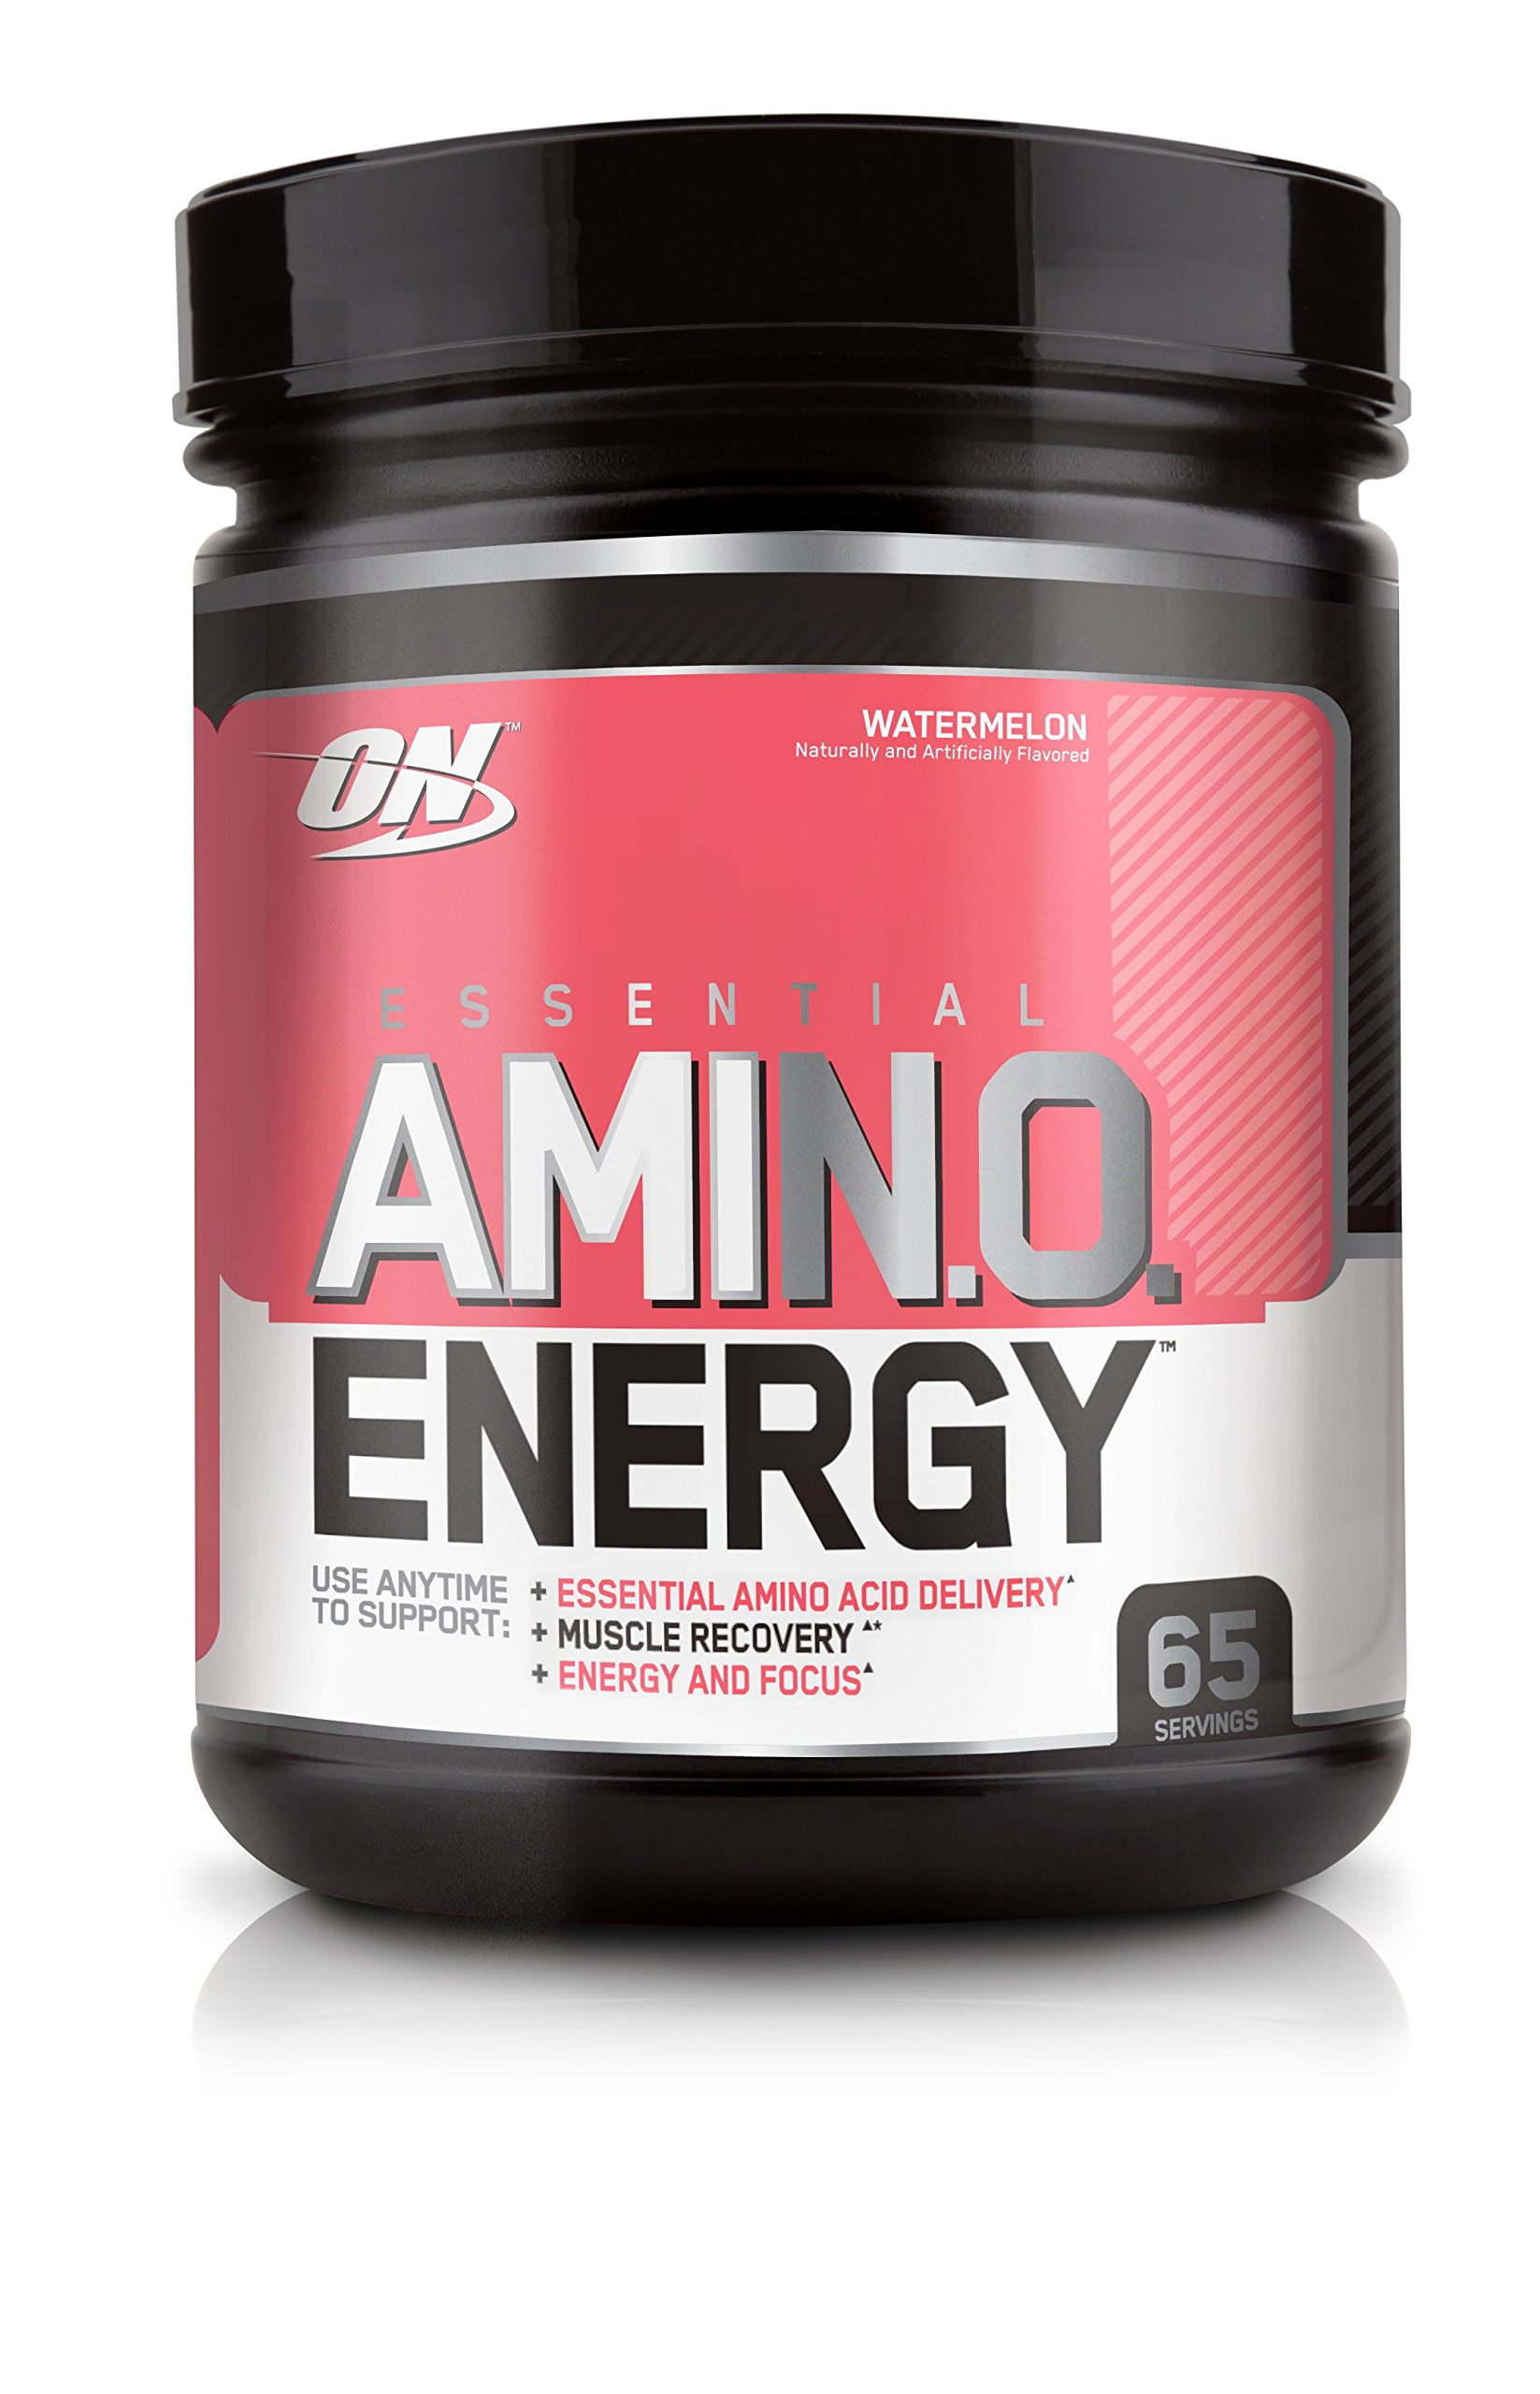 OPTIMUM NUTRITION ESSENTIAL AMINO ENERGY with Green Tea and Green Coffee Extract, Flavor: Watermelon, 65 Servings by Optimum Nutrition